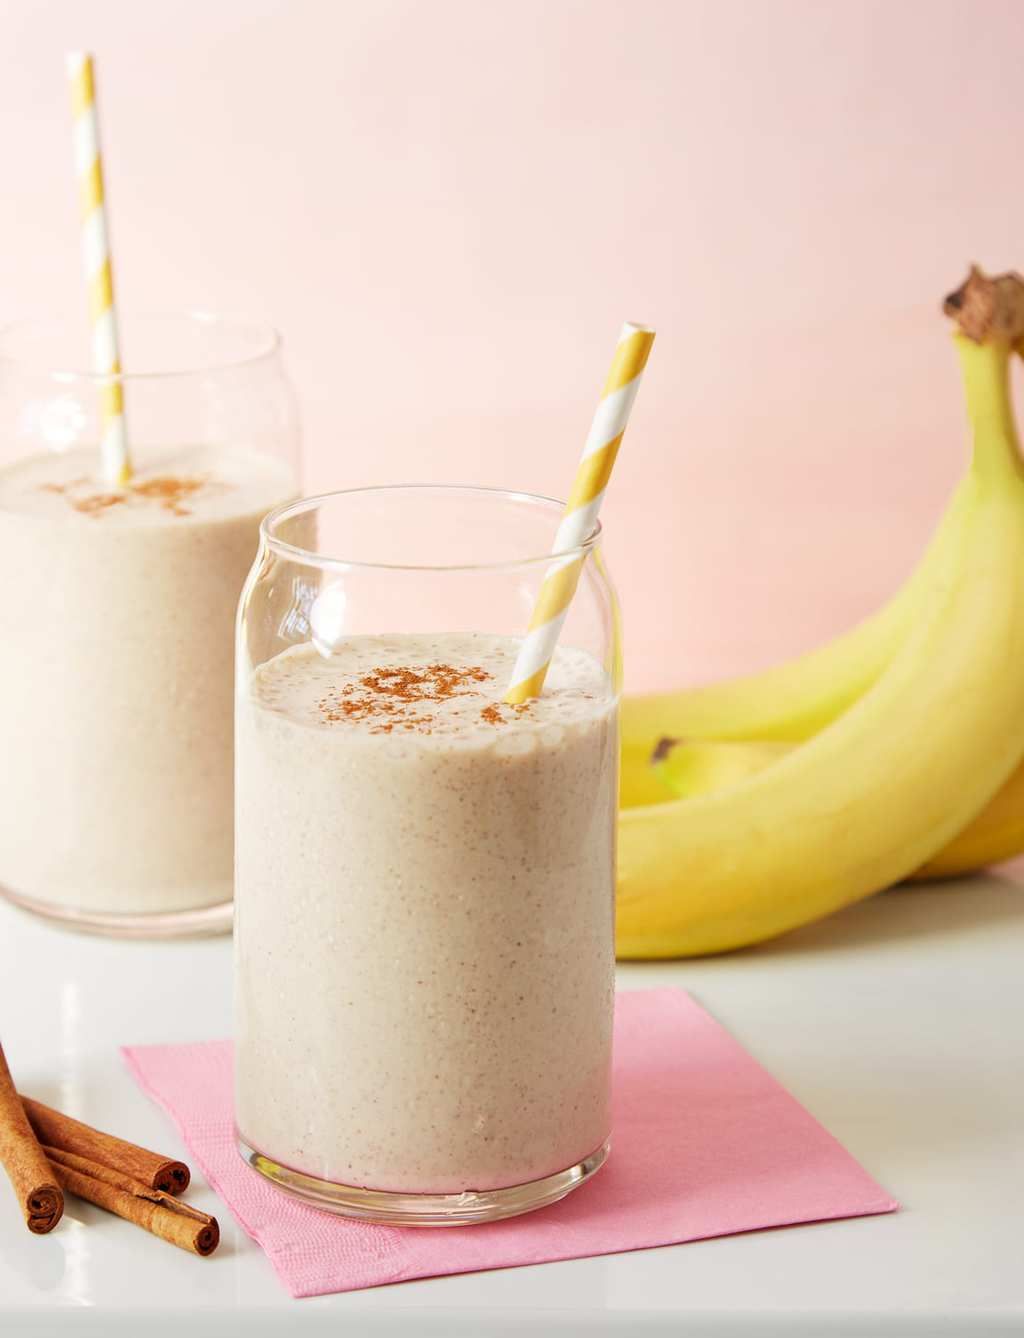 banana smoothie healthy smoothie with bananas and a pink napkin